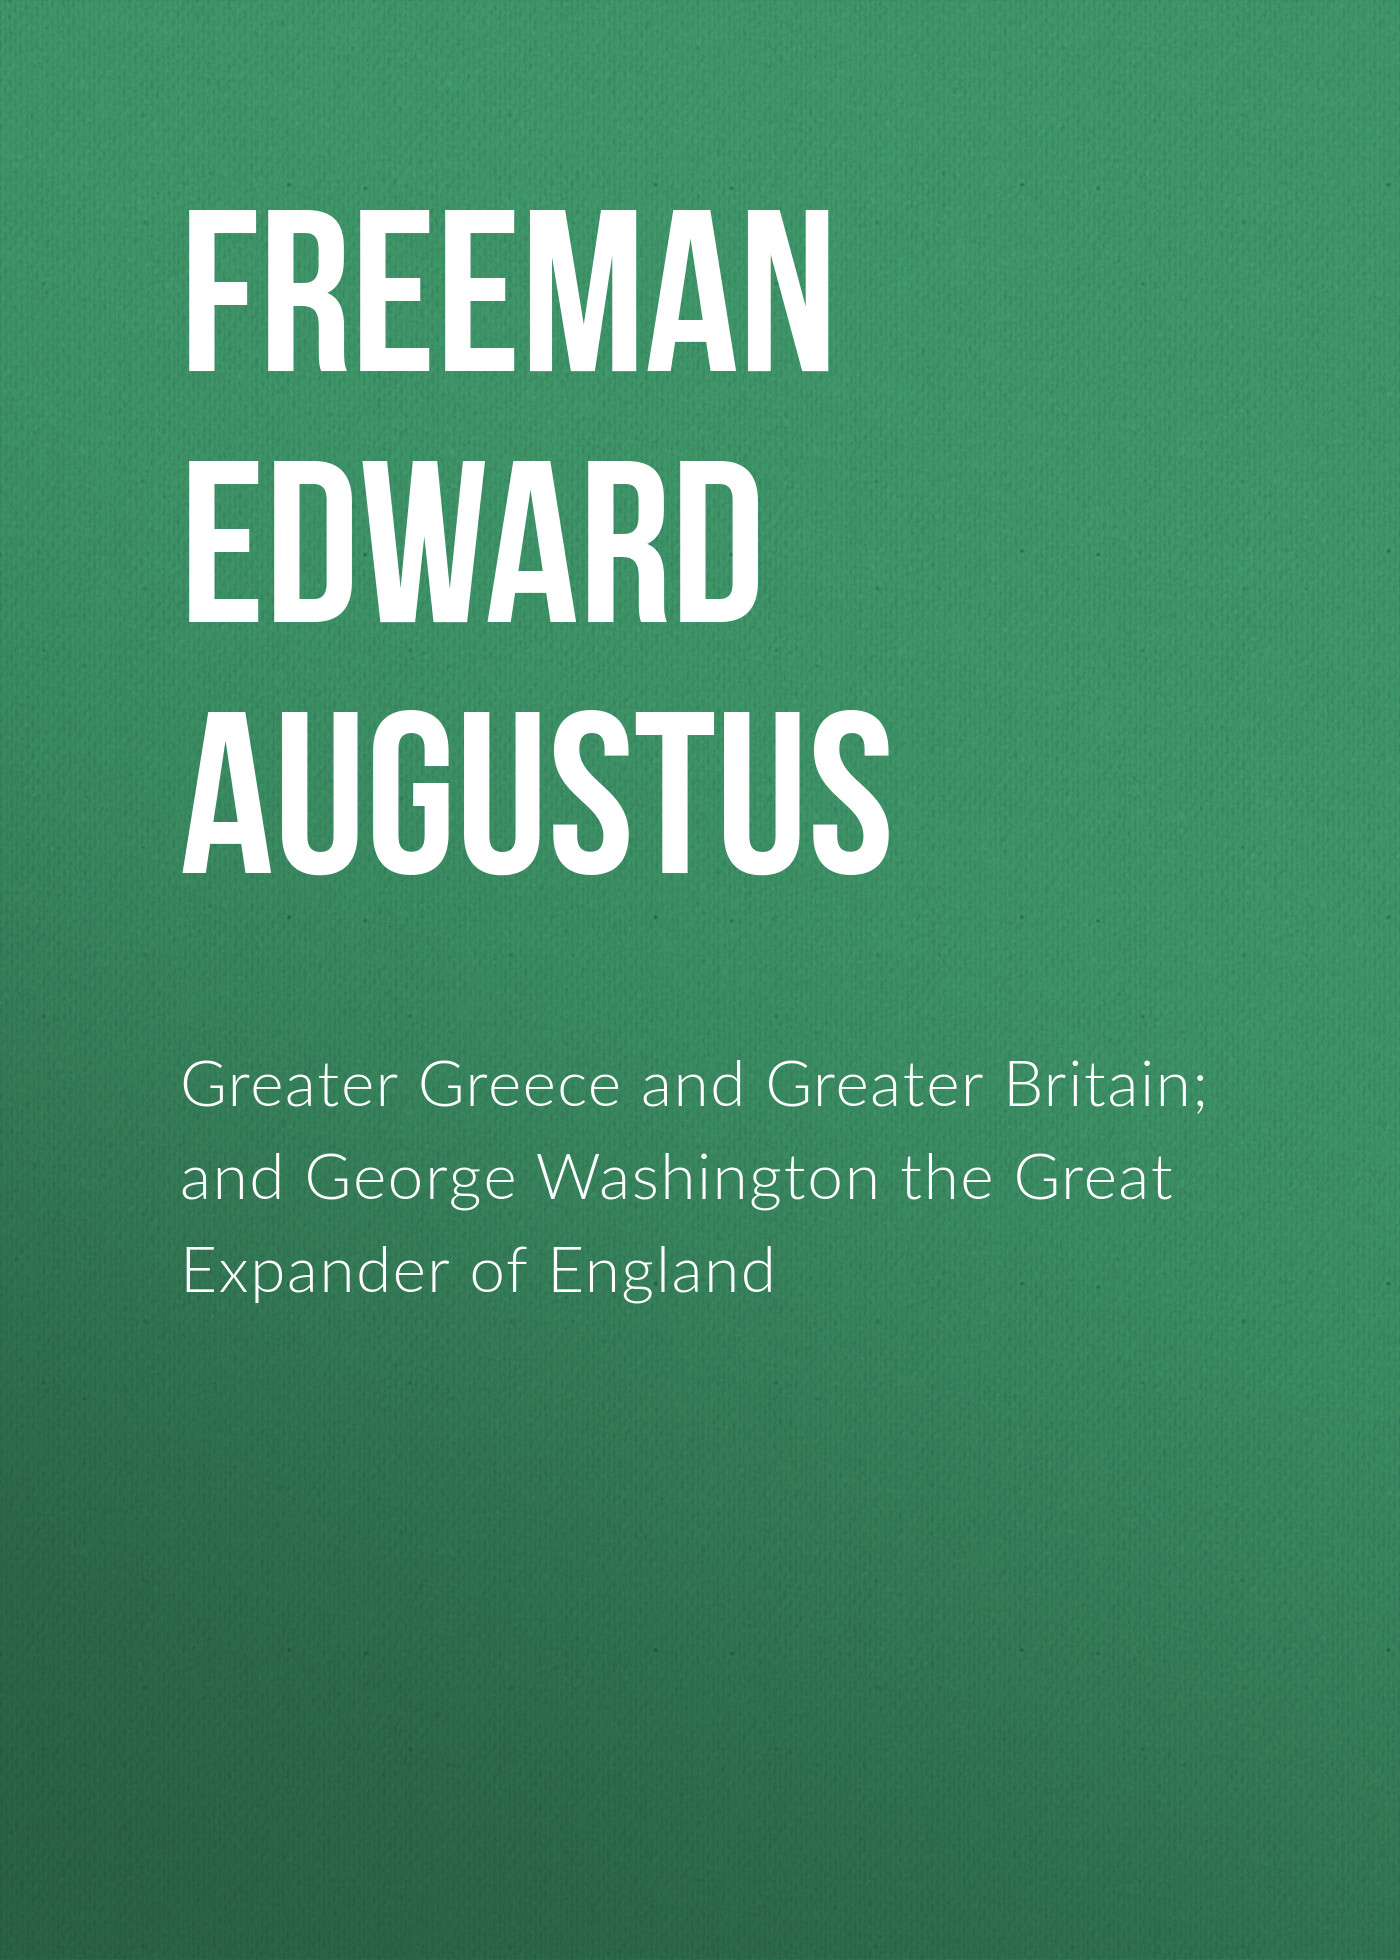 Freeman Edward Augustus Greater Greece and Greater Britain; and George Washington the Great Expander of England